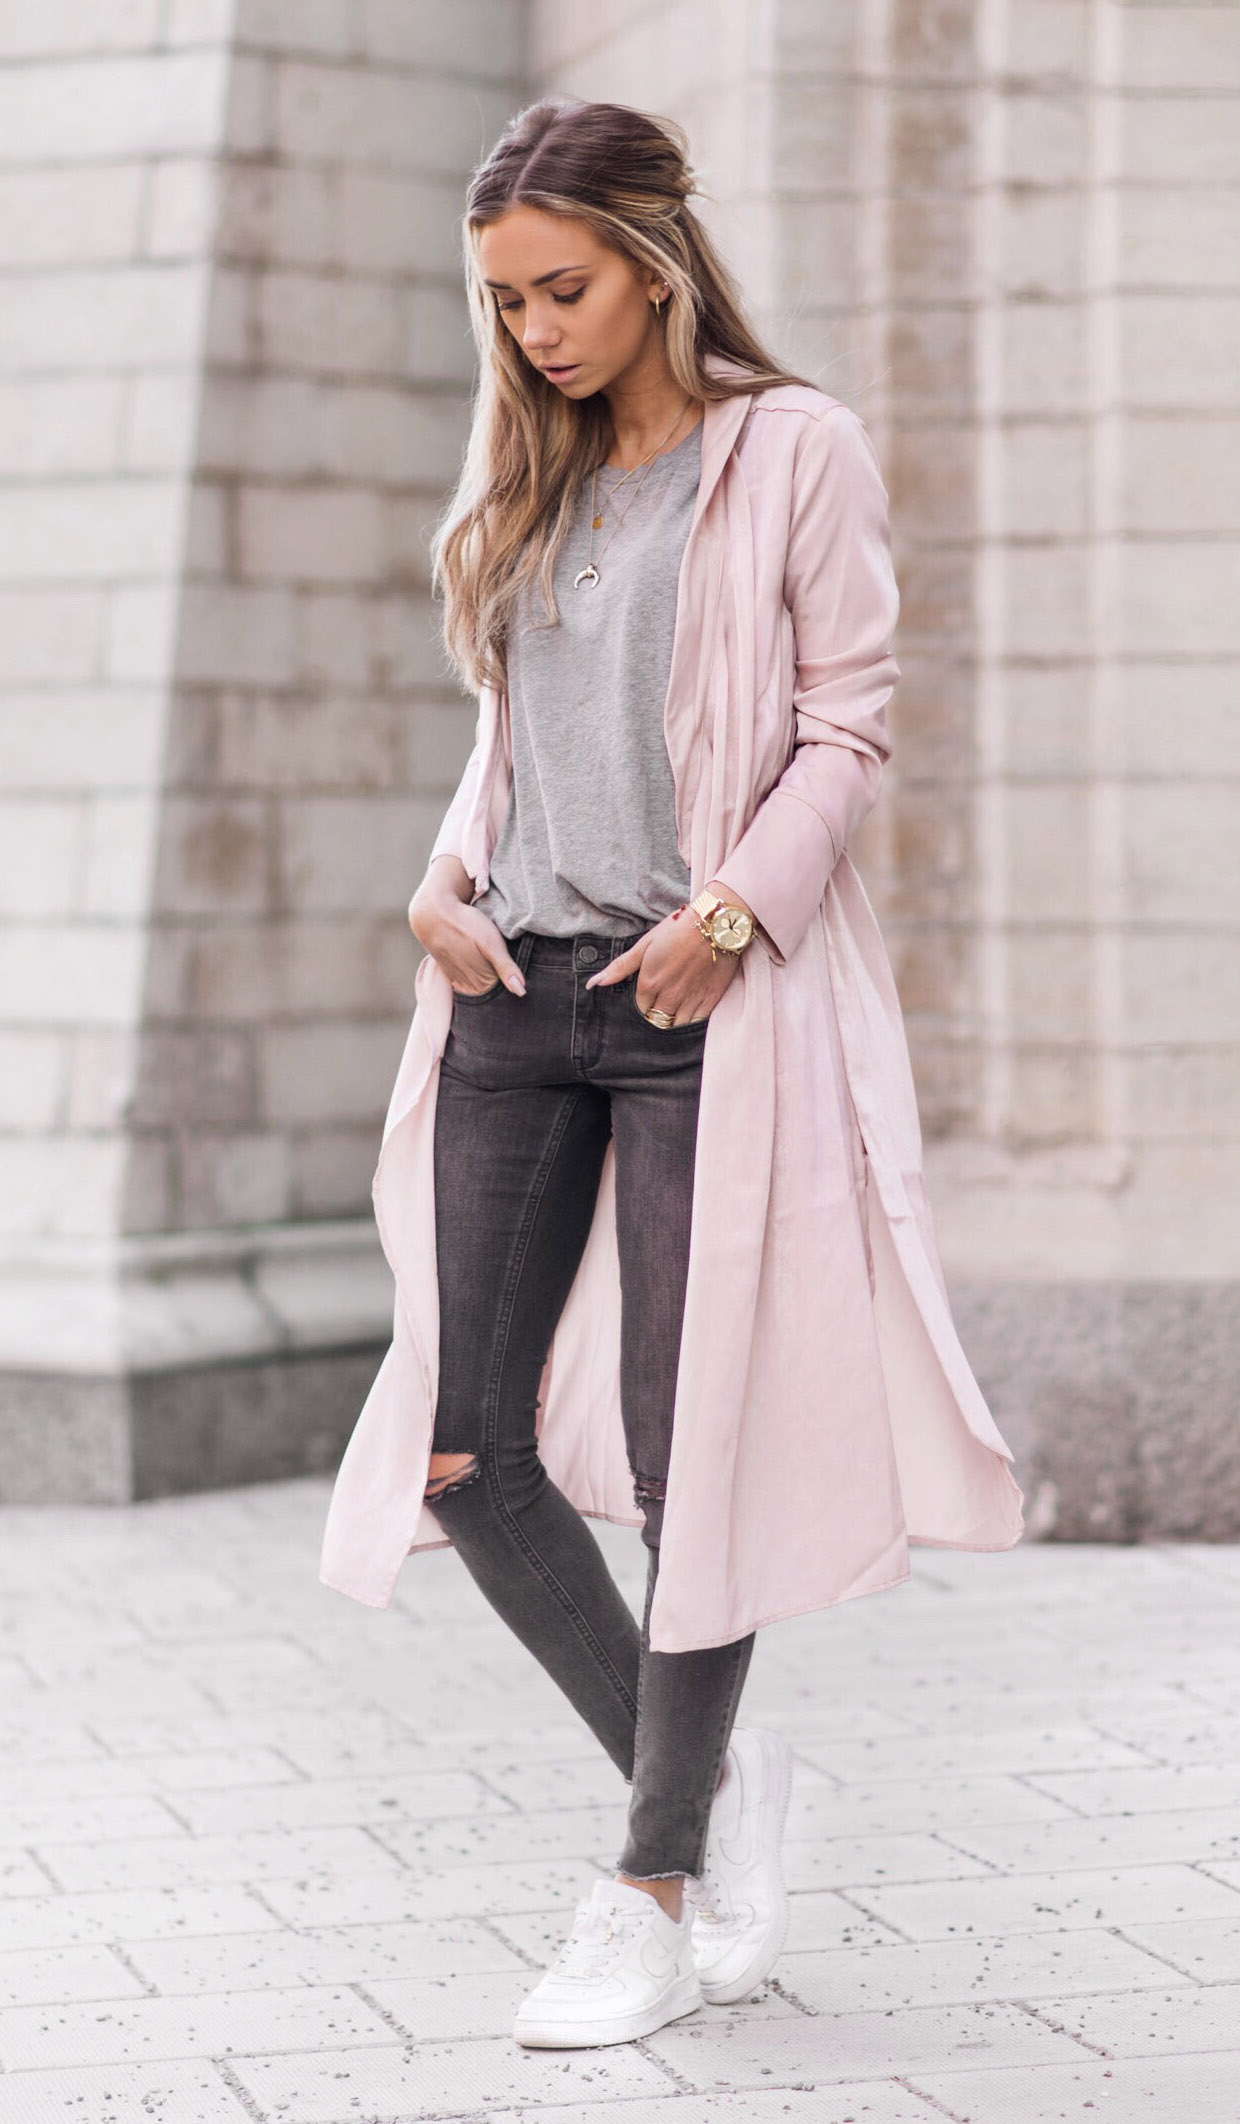 grayd-skinny-jeans-grayl-tee-pink-light-jacket-coat-trench-white-shoe-sneakers-watch-necklace-howtowear-fashion-style-outfit-spring-summer-hairr-weekend.jpg